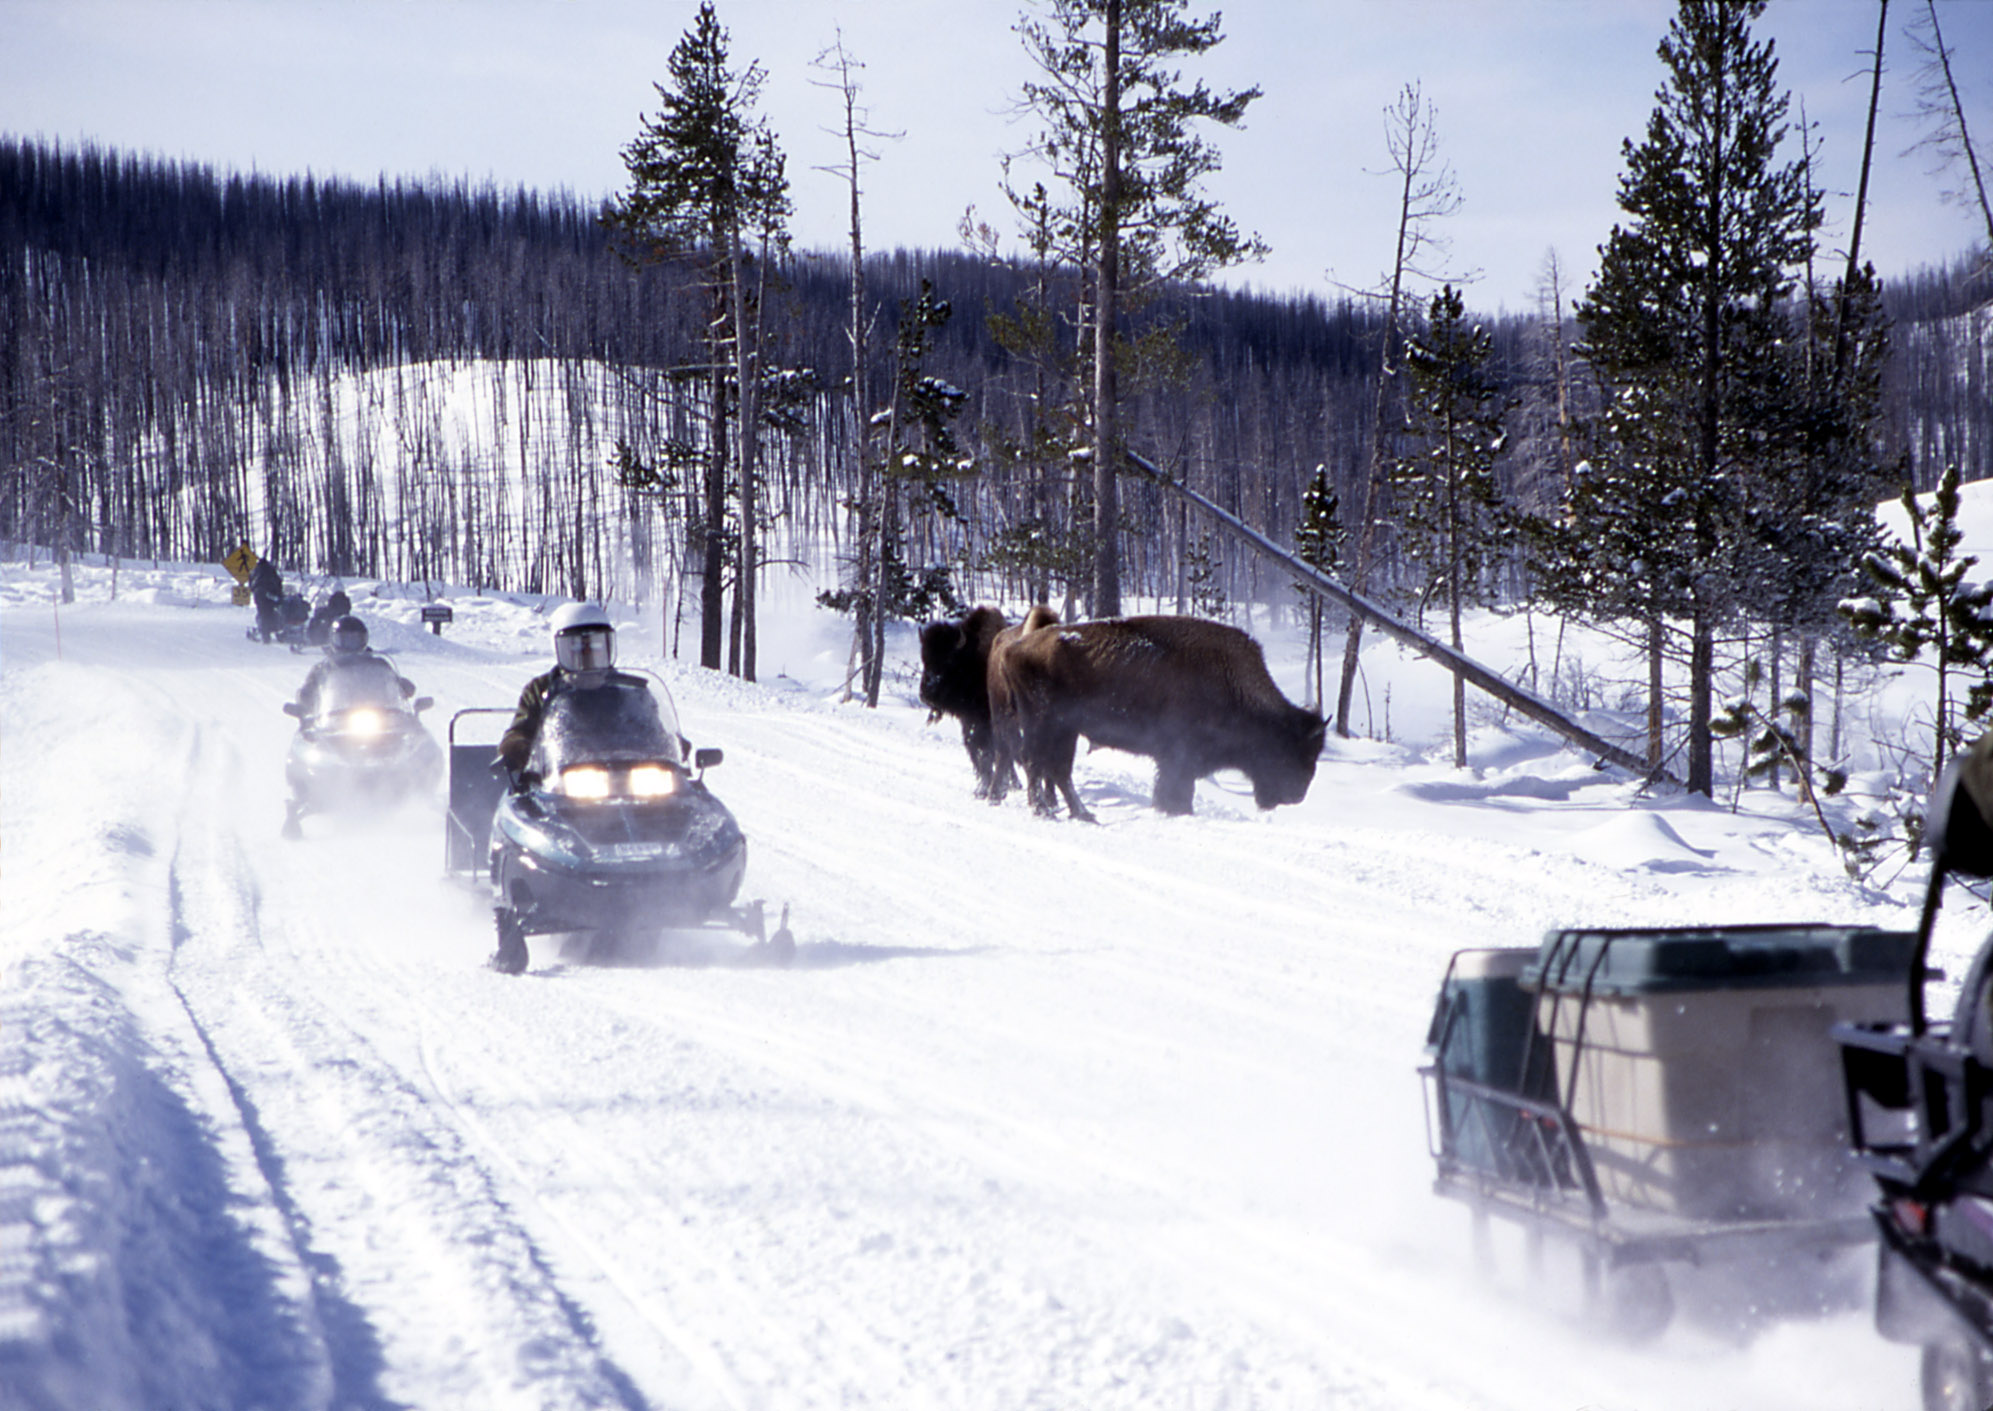 Over-snow vehicles driving past bison in Yellowstone NP